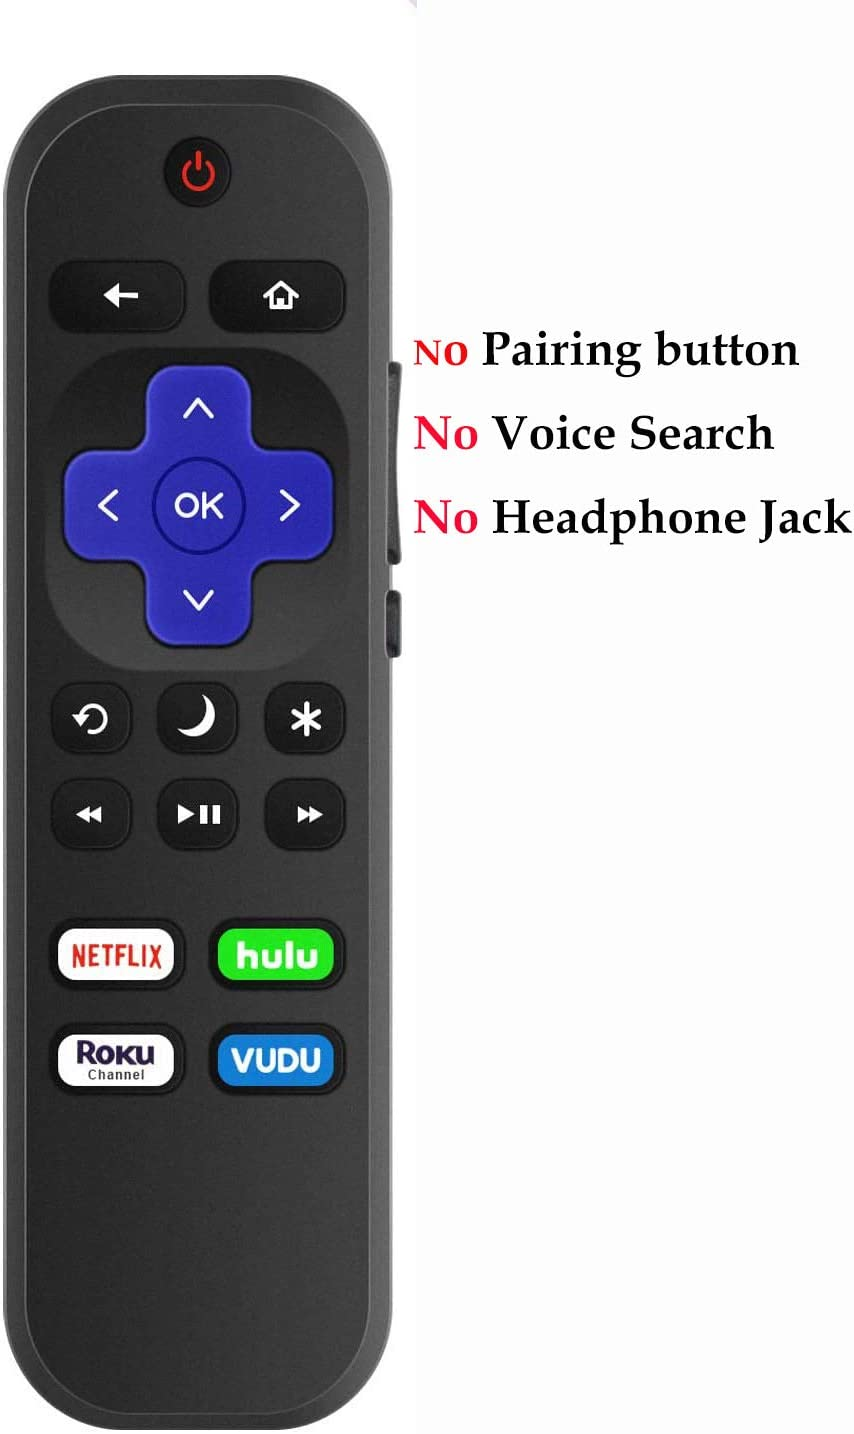 Remote Control Replacement for Hisense Roku TV Universal for All Hisense 4k Roku TV 32H4E1 32H4F 32H4030F 40H4030F 43H4030F 43R7080E 50R6E 50R7E 55R6000E 58R6E 60R5800E 65R6D 65R6E 75R6E1